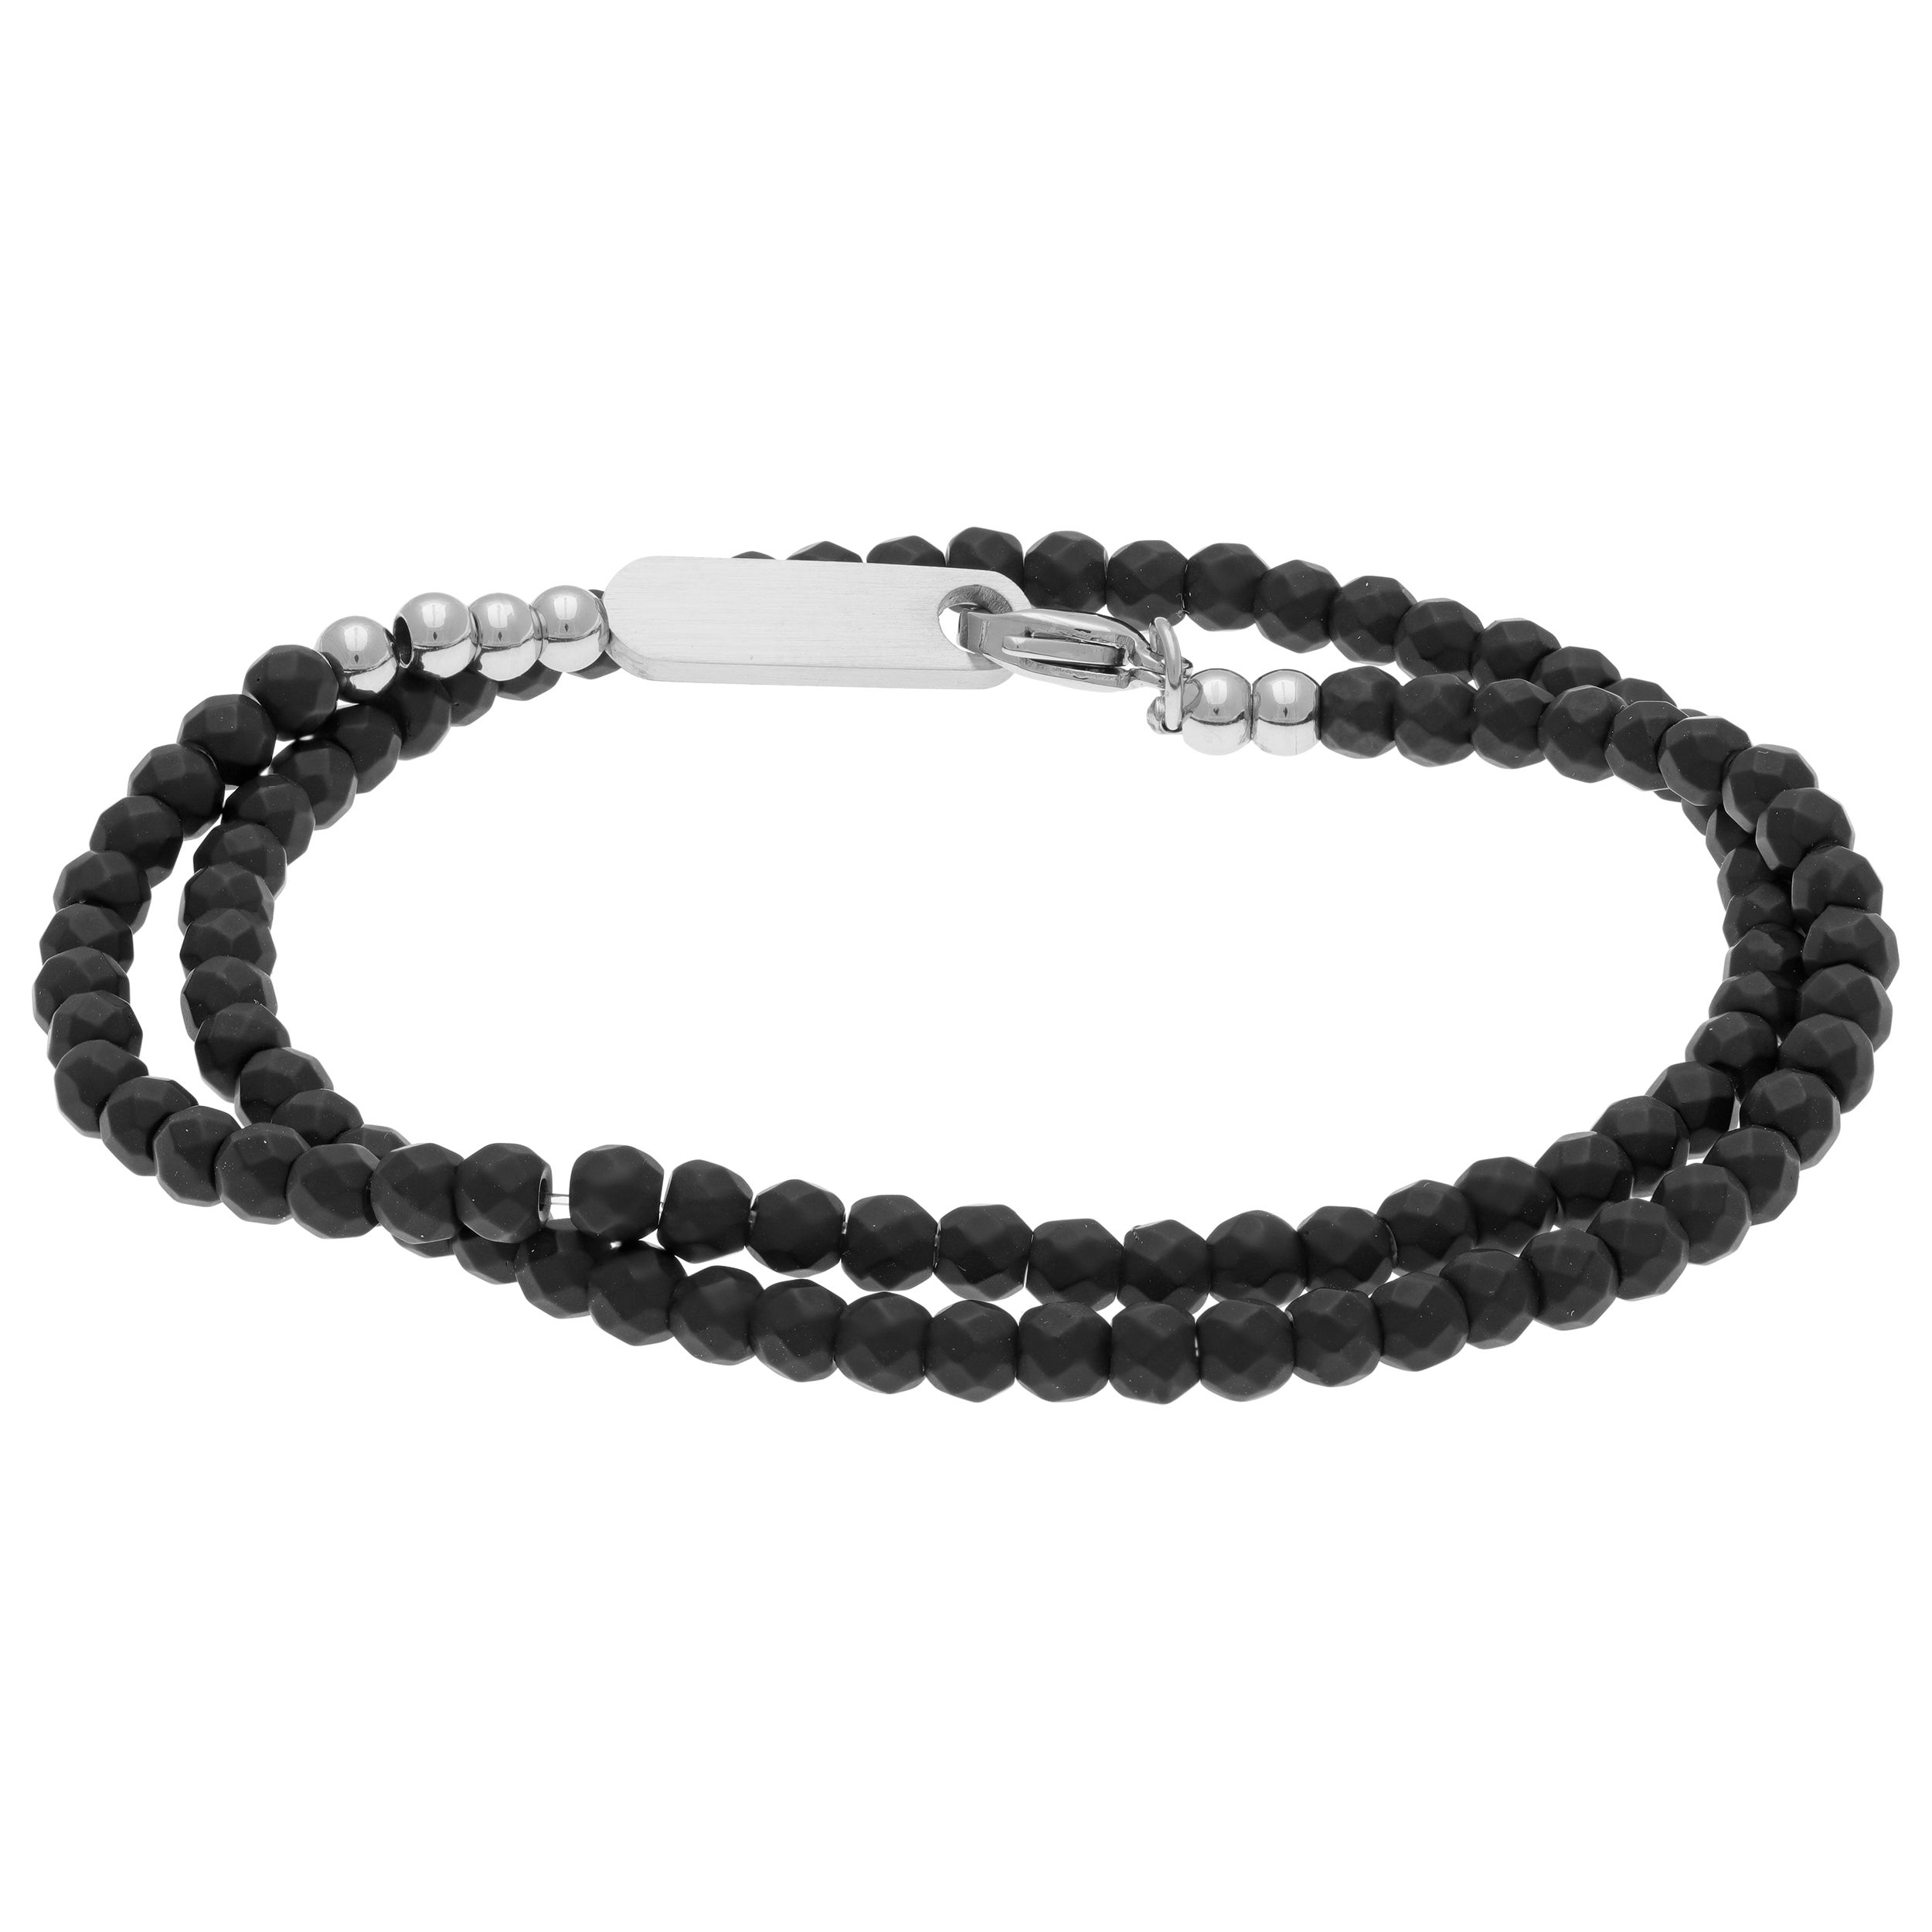 Black Hematite Bracelet with Stainless Steel Closure (Hem...